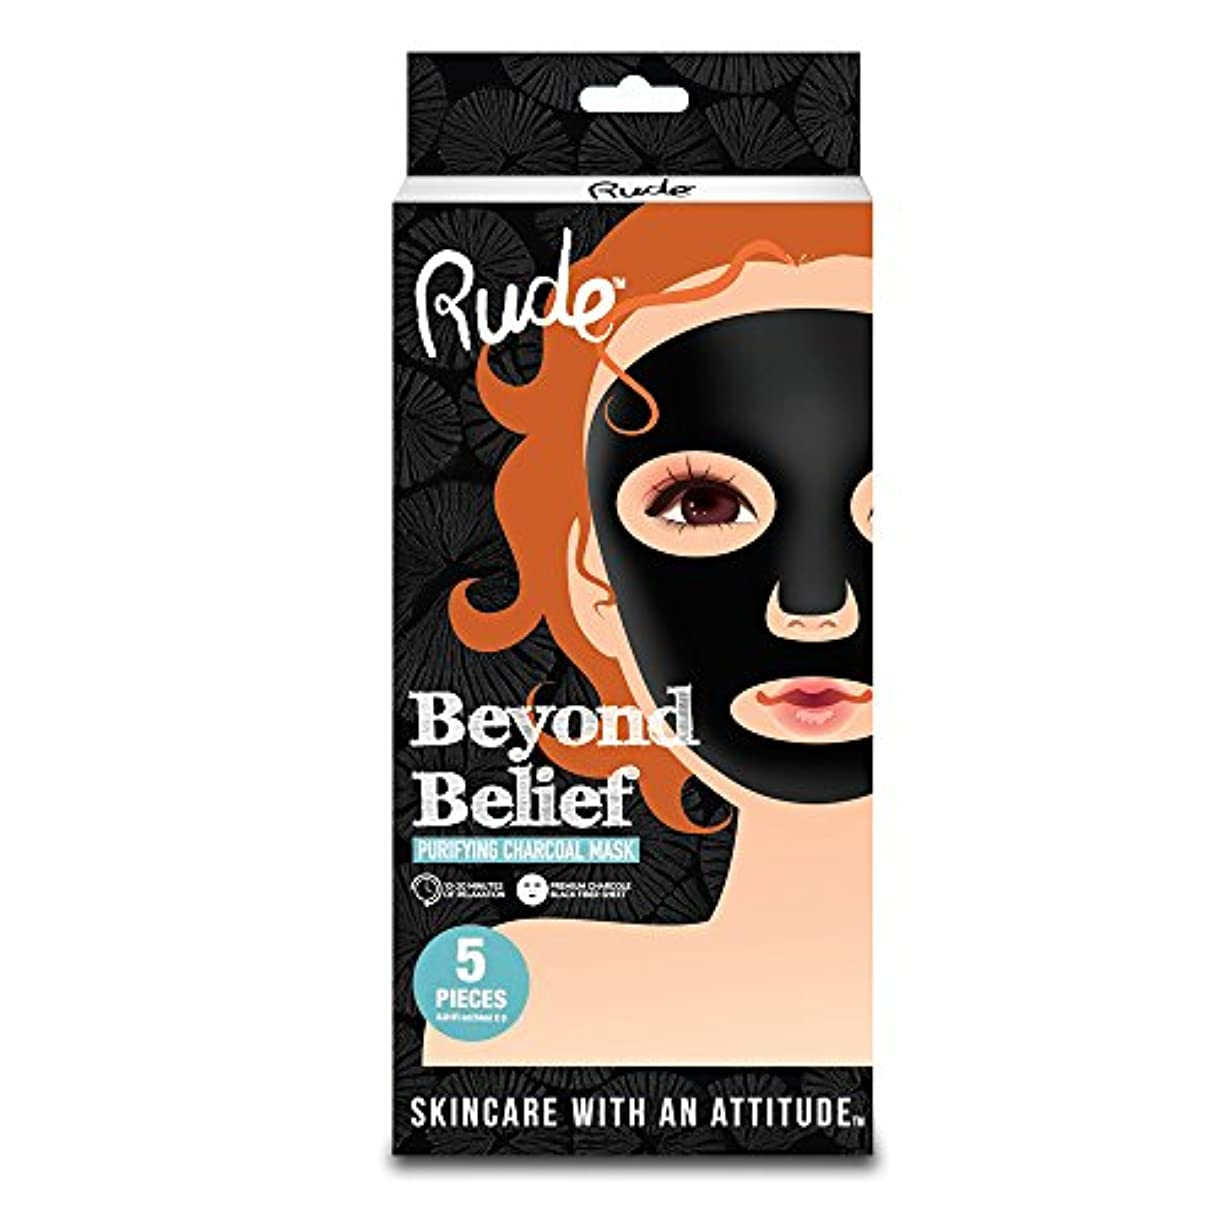 社交的ウィザードガソリンRUDE Beyond Belief Purifying Charcoal Mask 5 Piece Pack (並行輸入品)